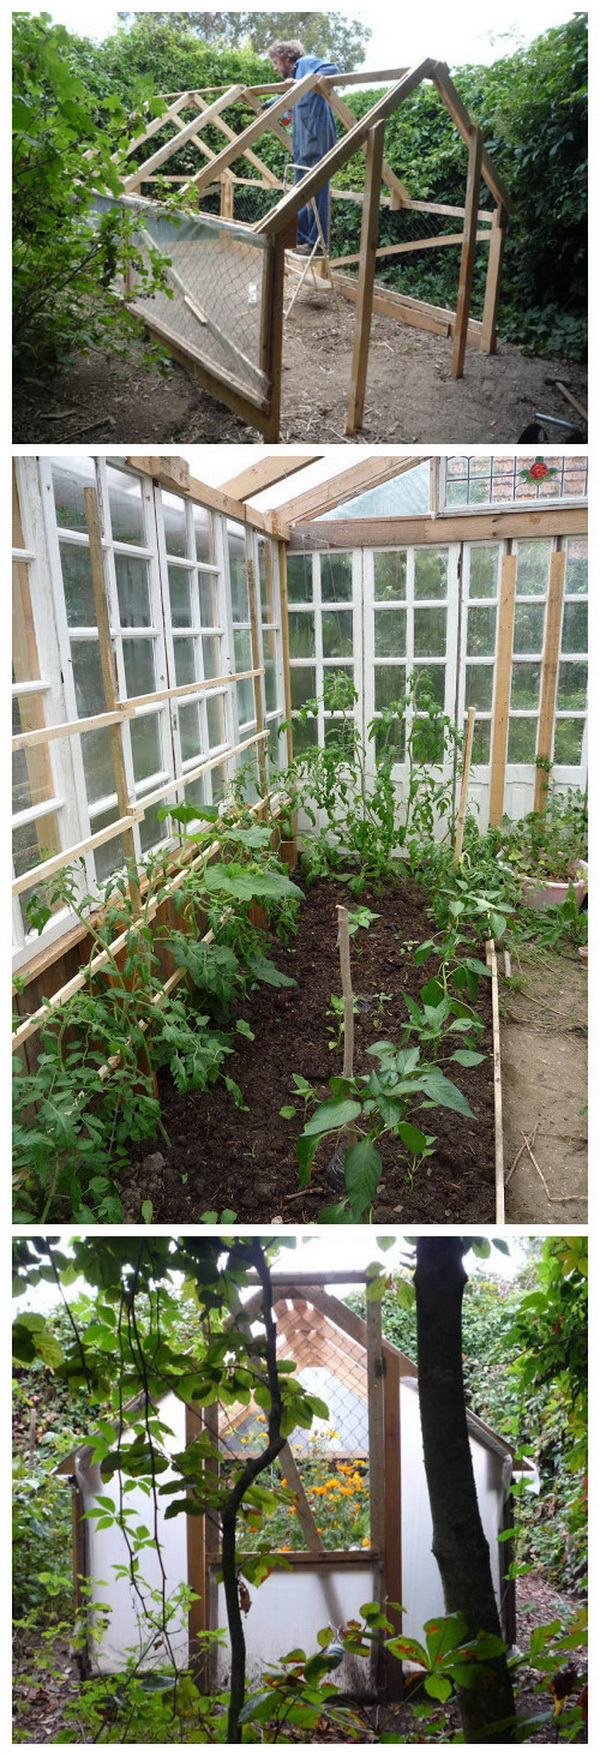 Homemade Low Cost Glass Greenhouse from Recuperated Windows and Pallet Wood.